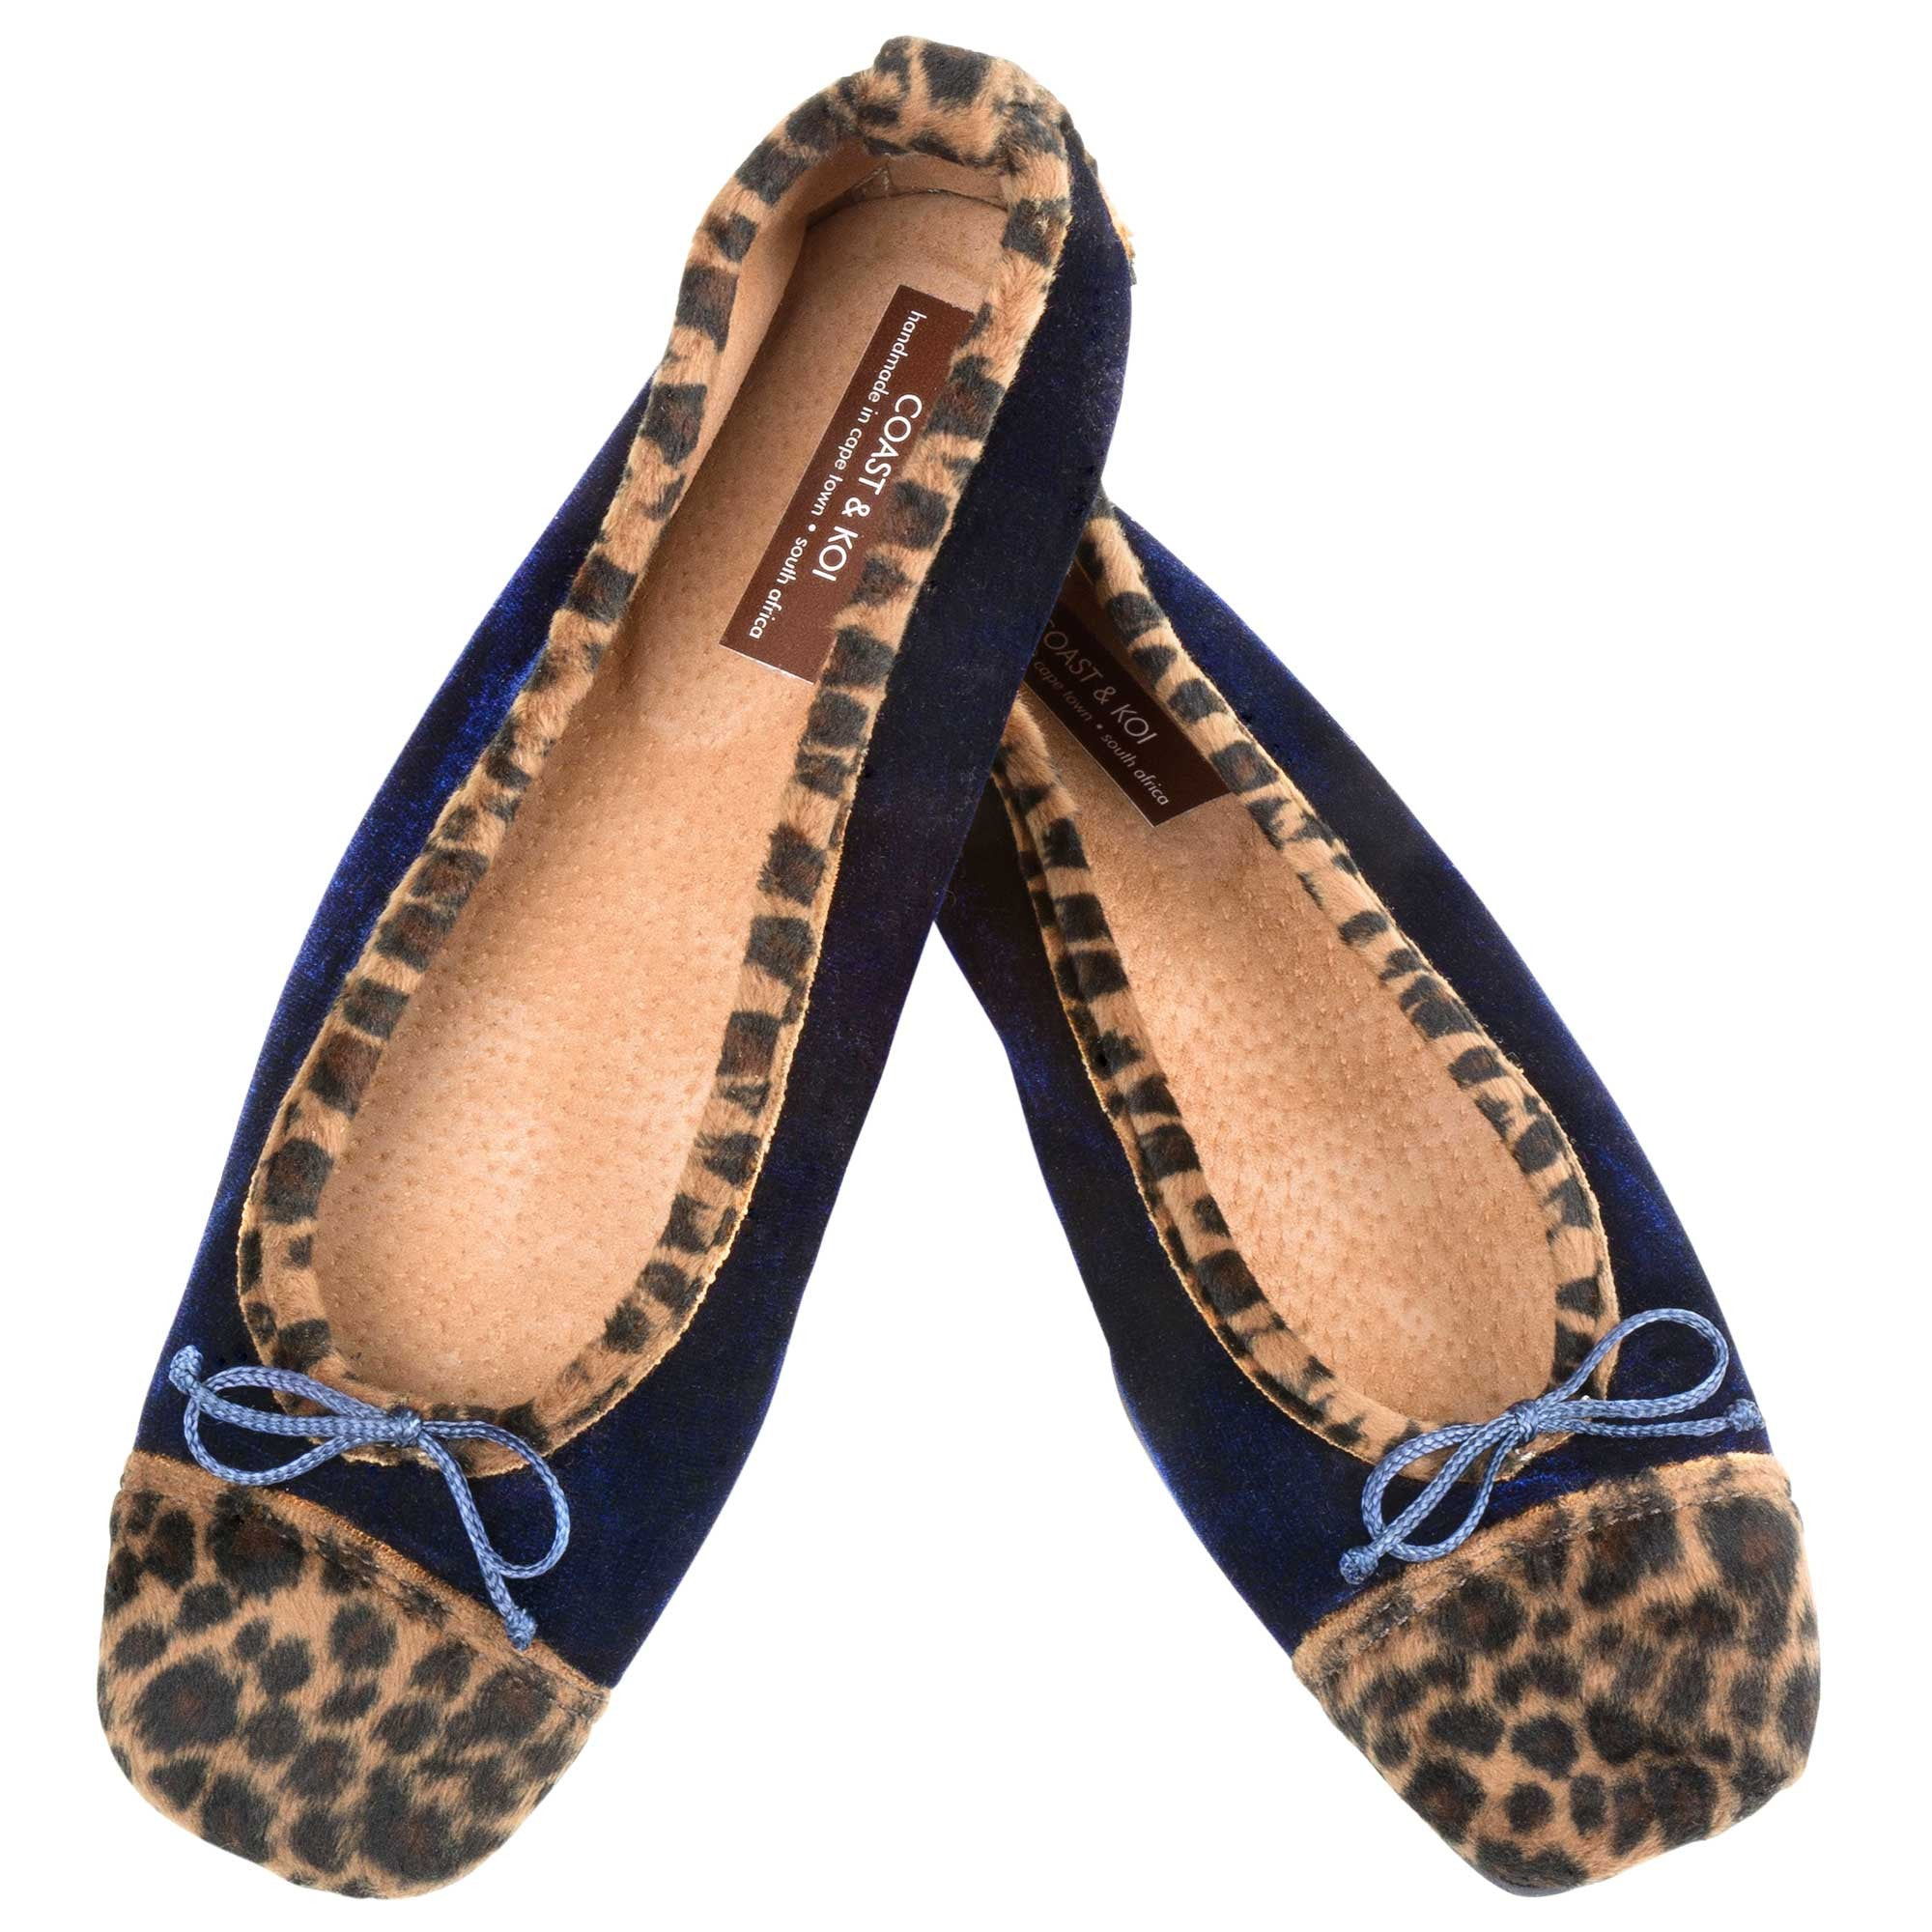 Navy Square Toe pump